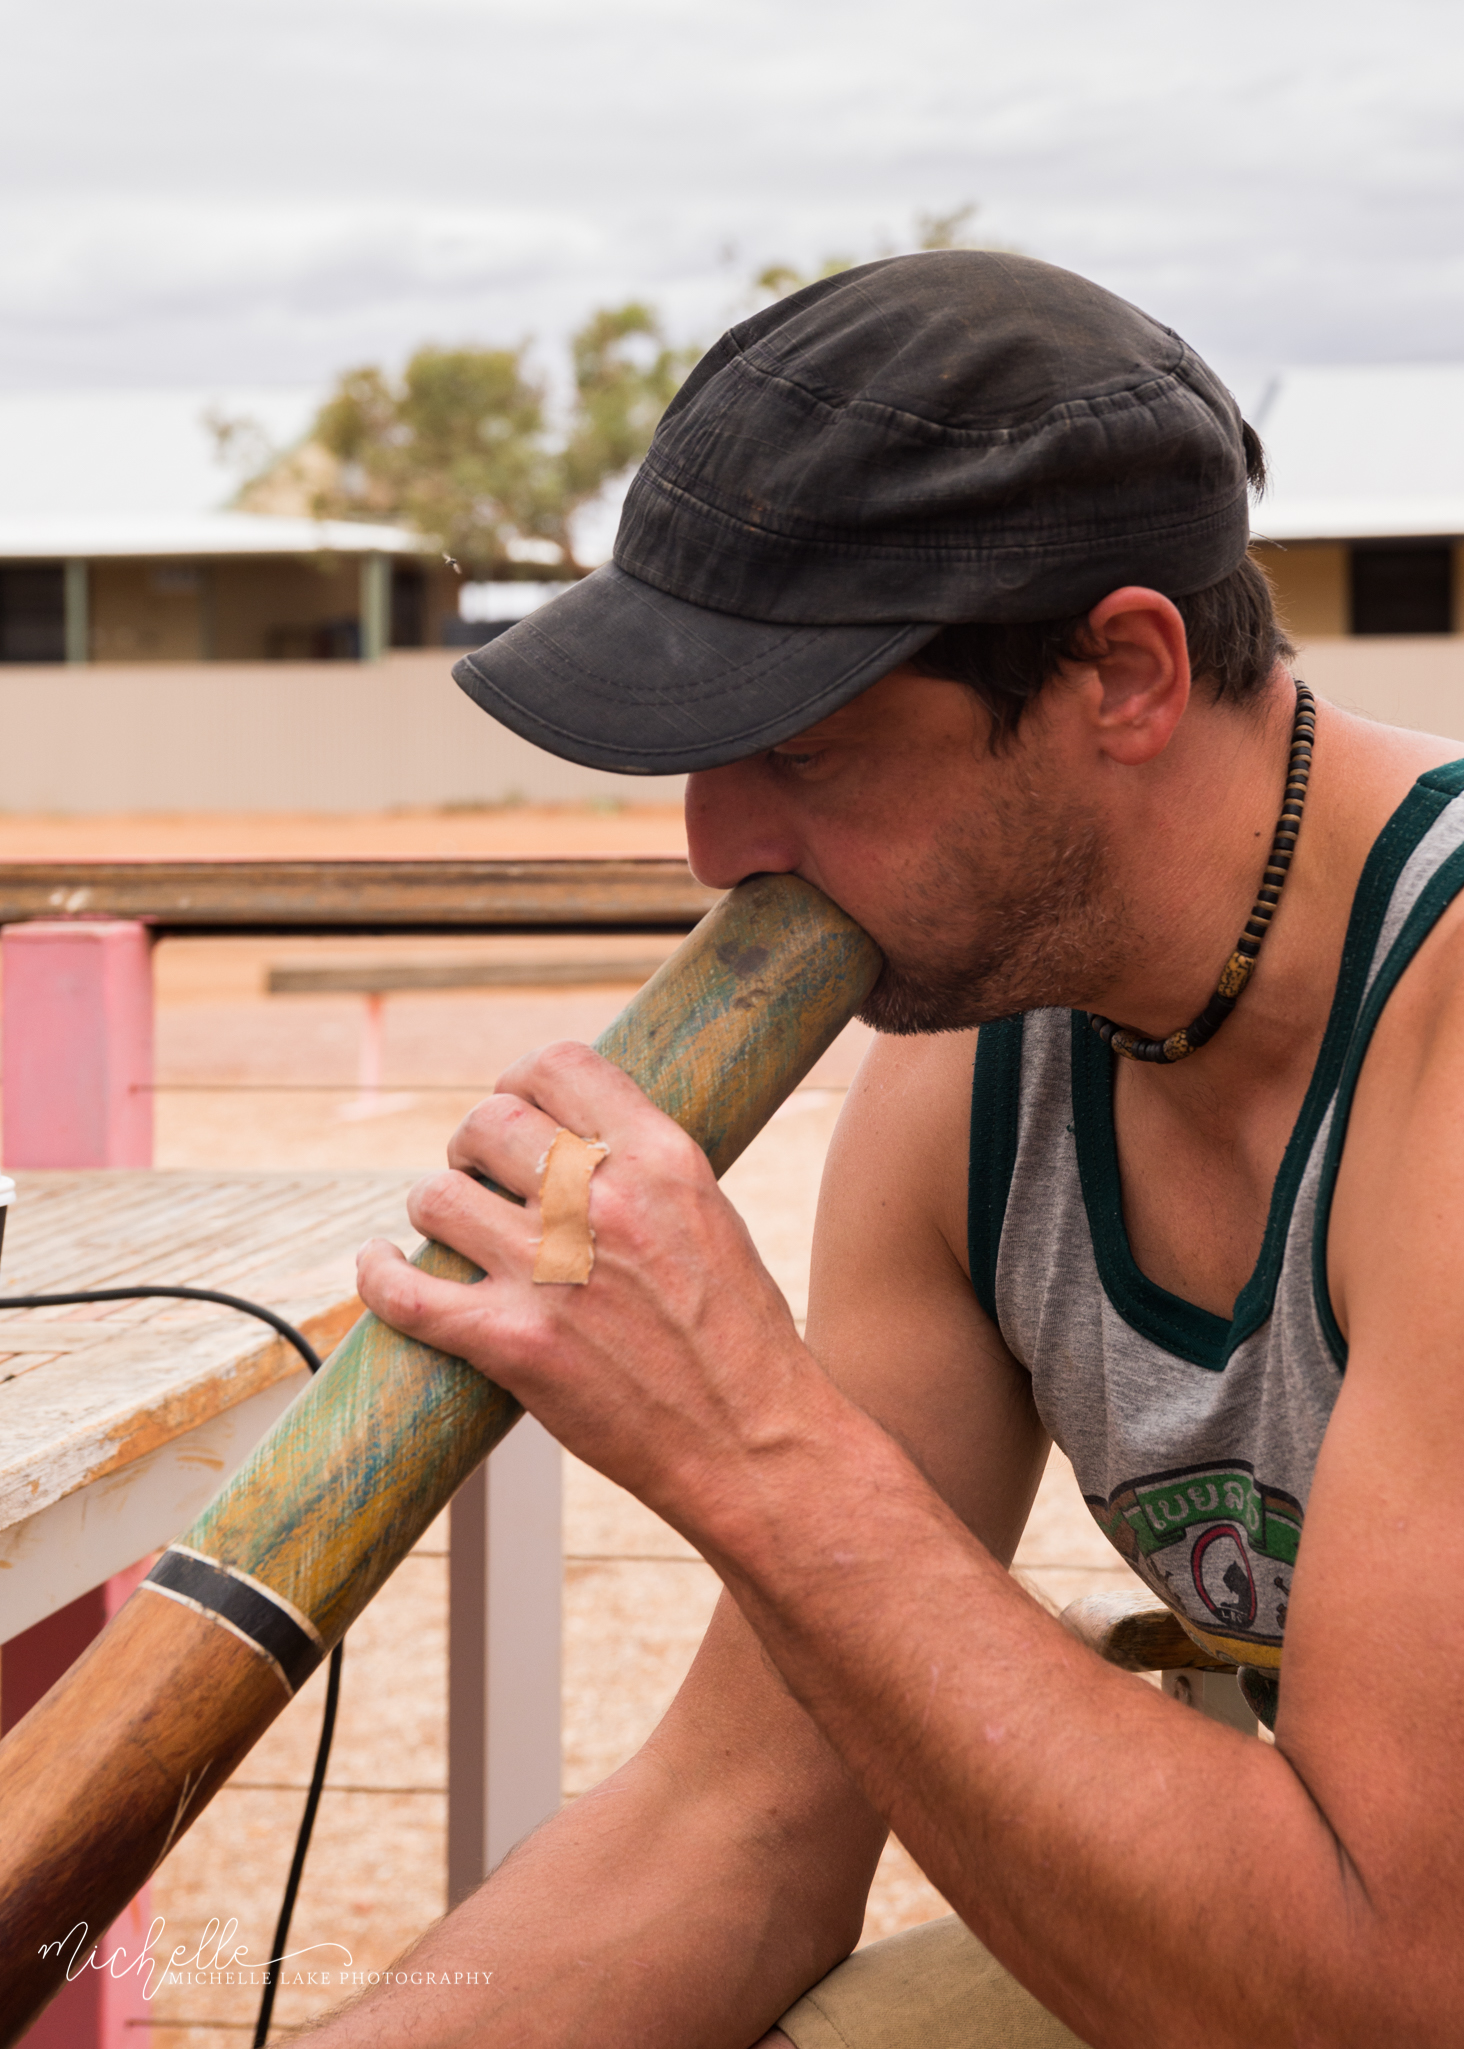 Geoff playing the yidaki/didgeridoo